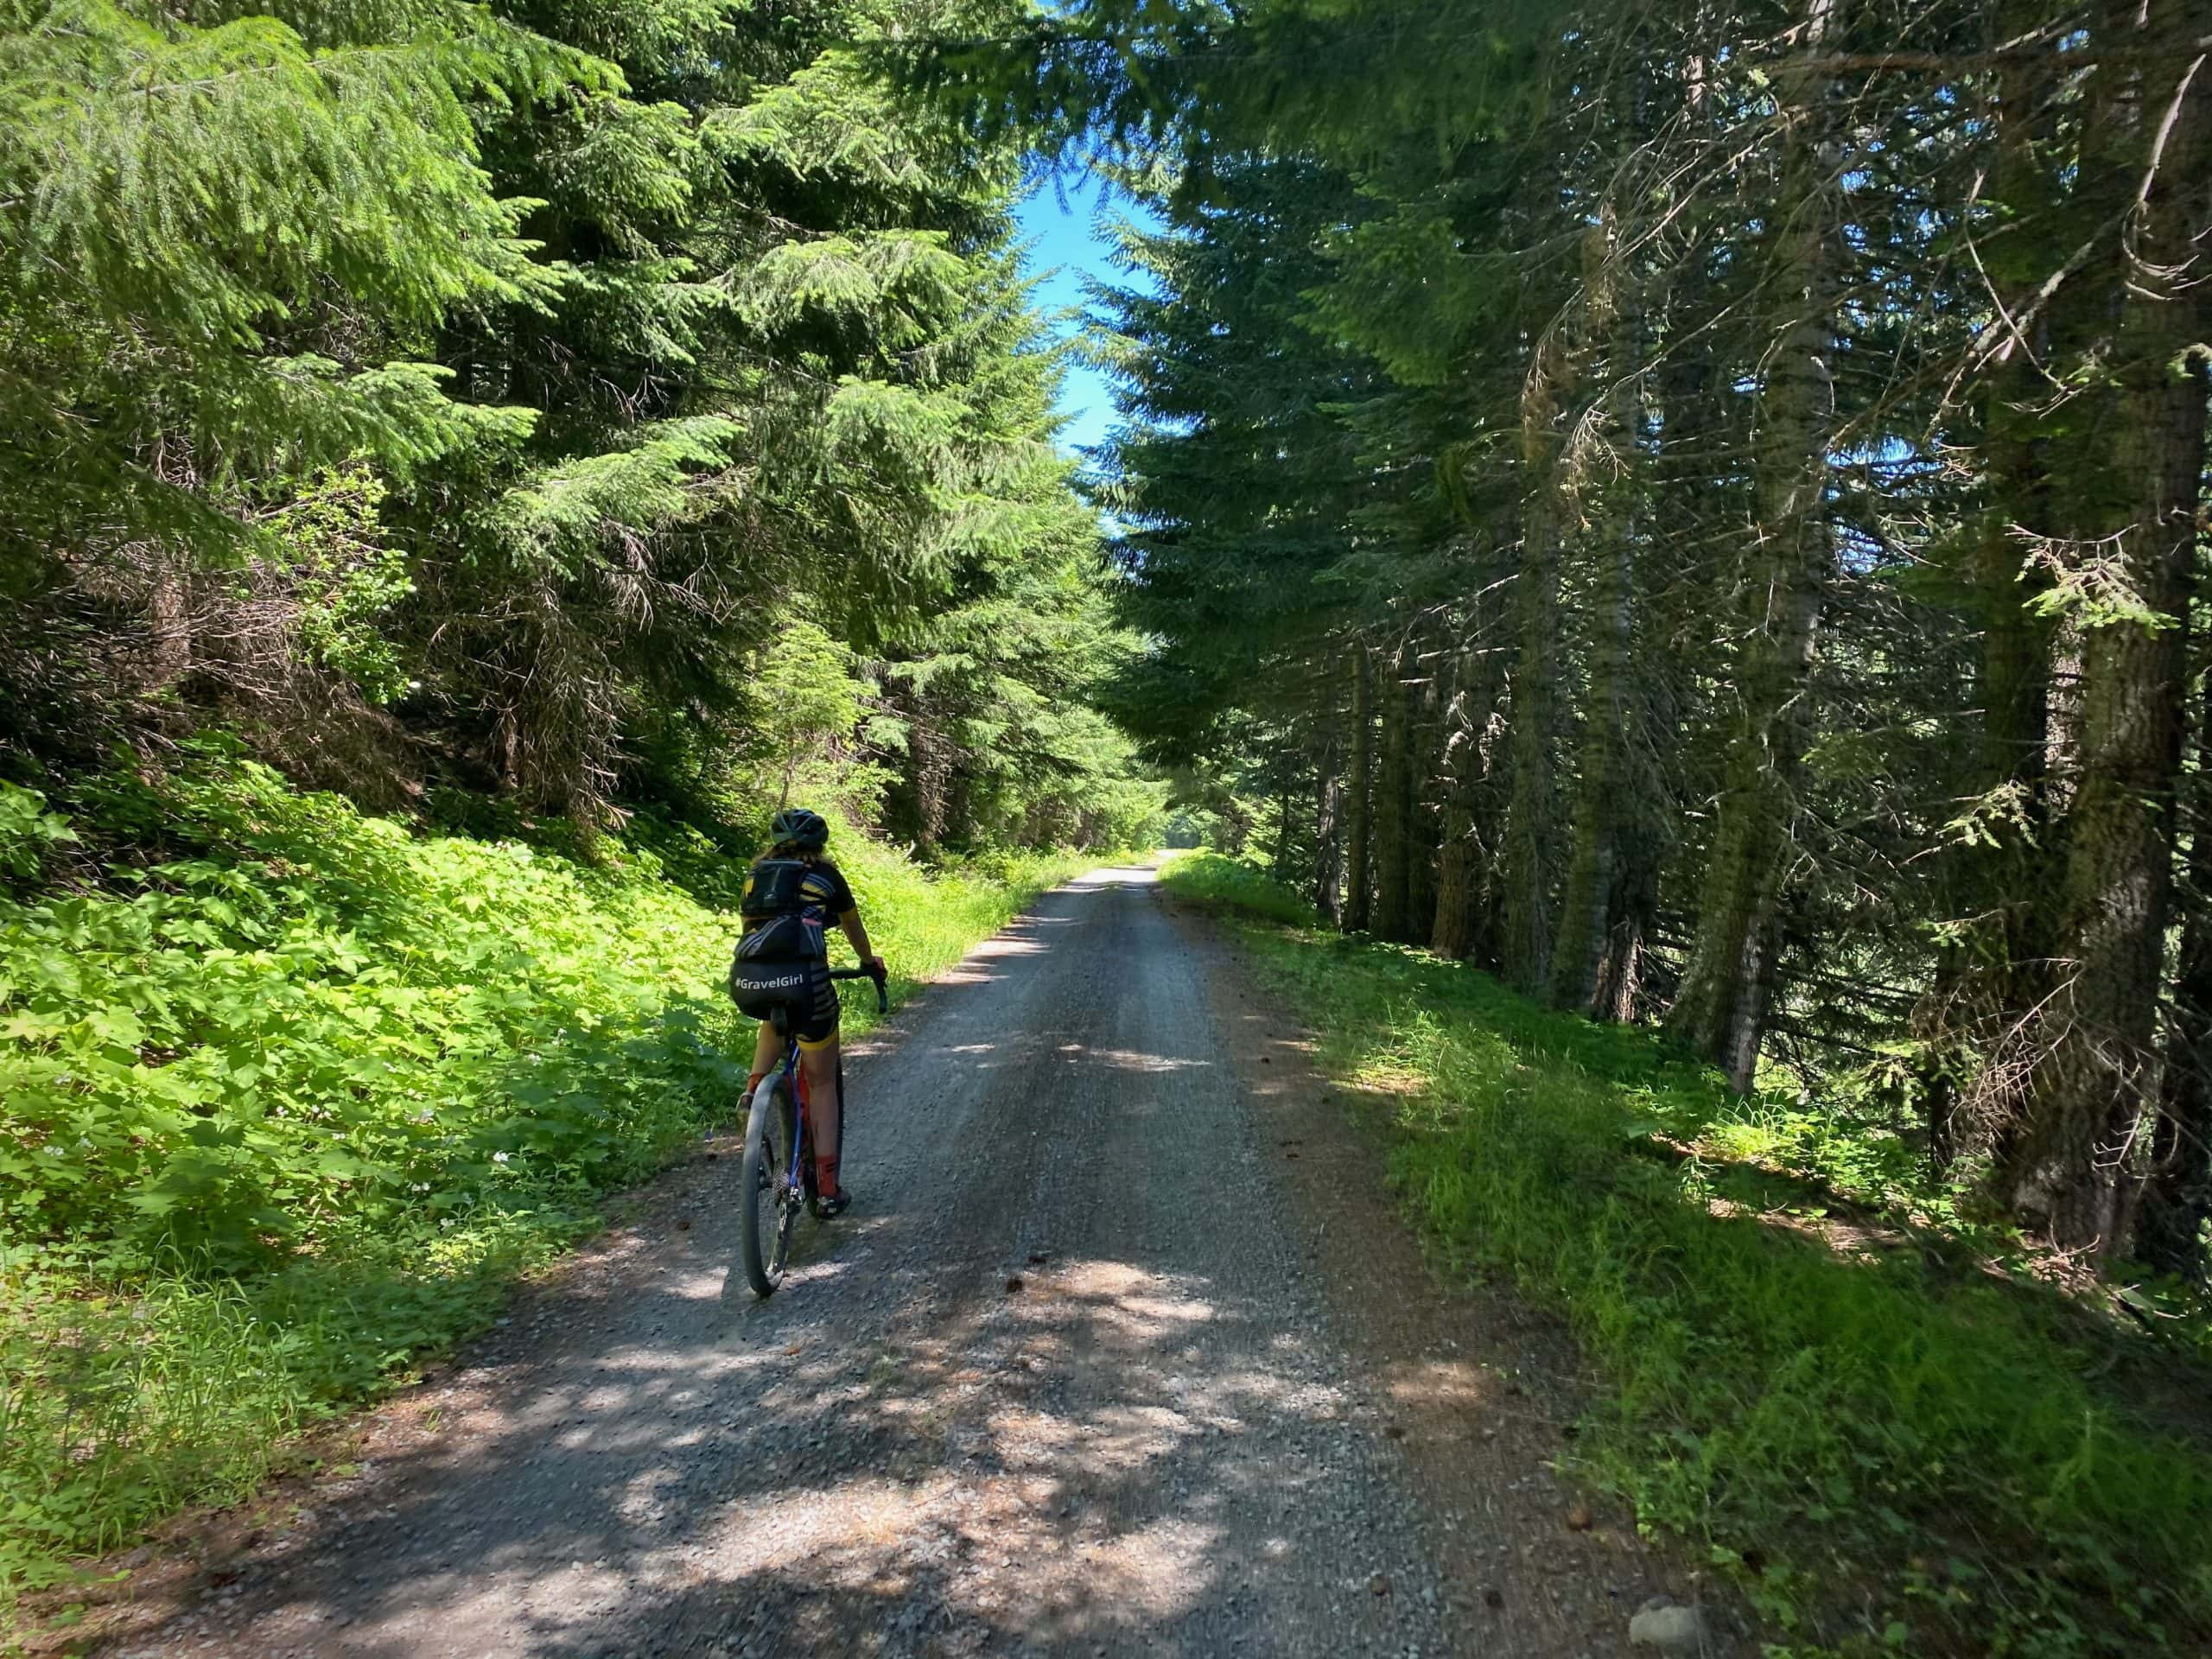 Gravel Girl riding under the forested canopy of a gravel road near the MIddle Fork of the Willamette River in Oregon.